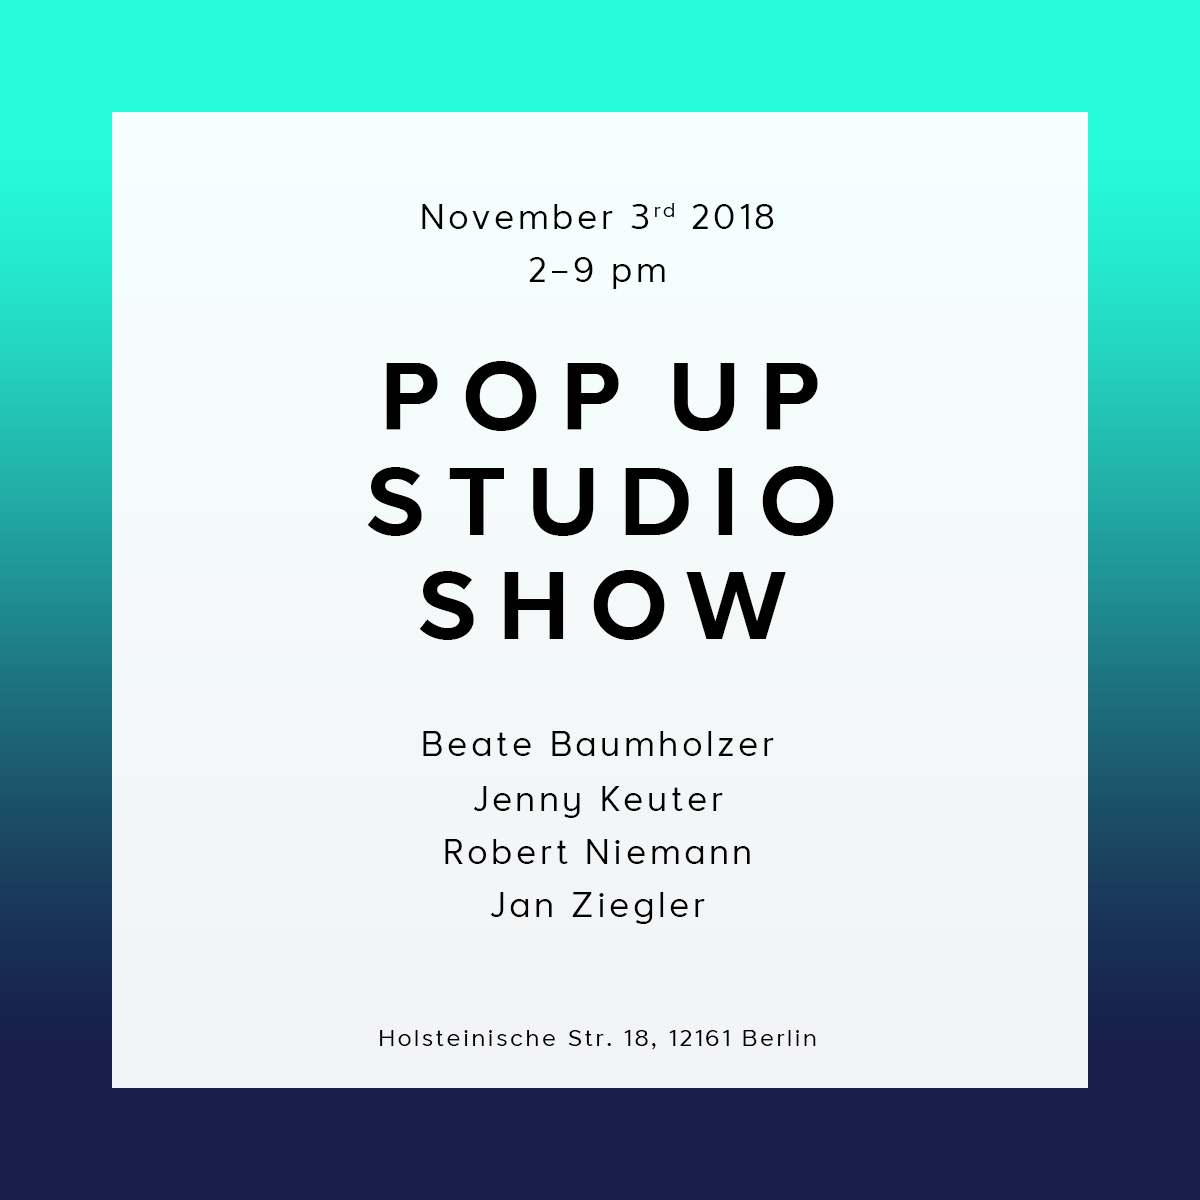 POP UP STUDIO SHOW